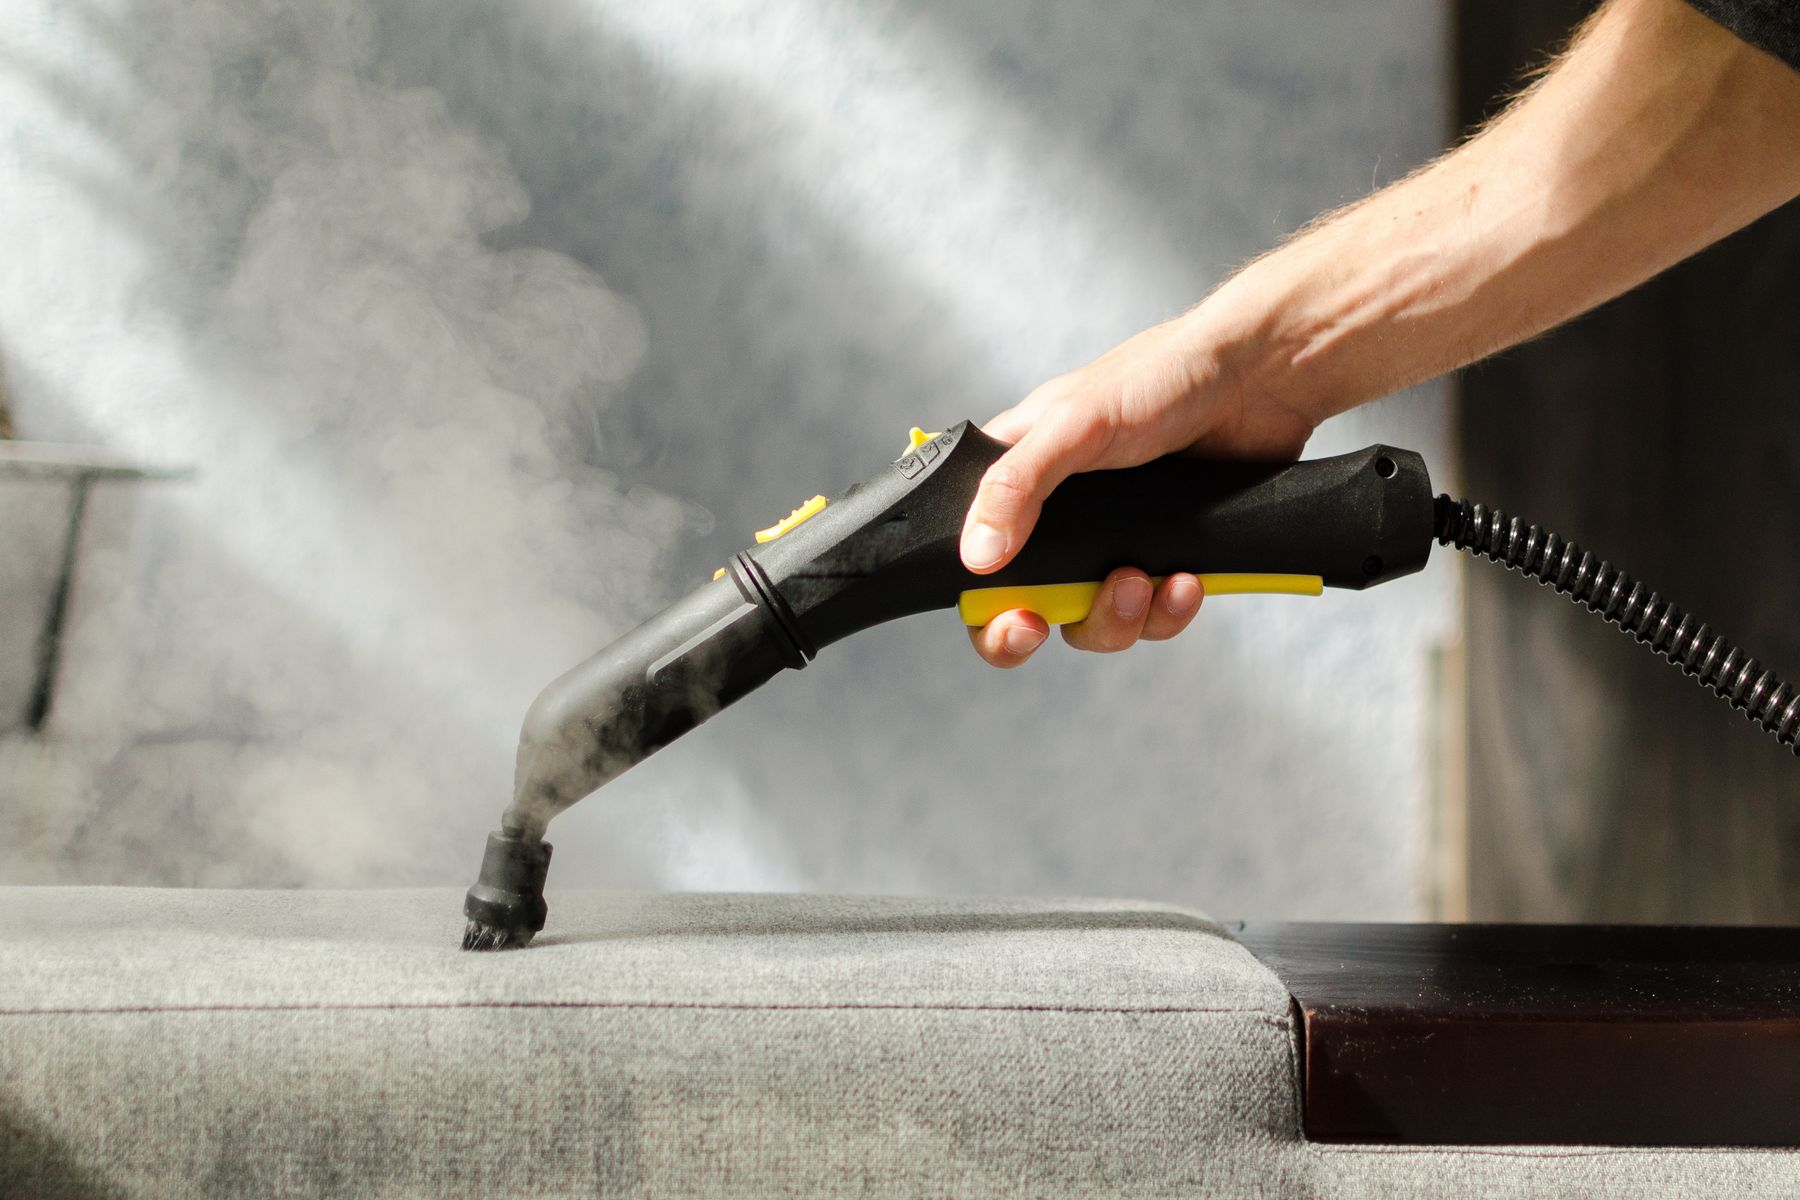 How to Do Steam Cleaning at Home | Cleanipedia